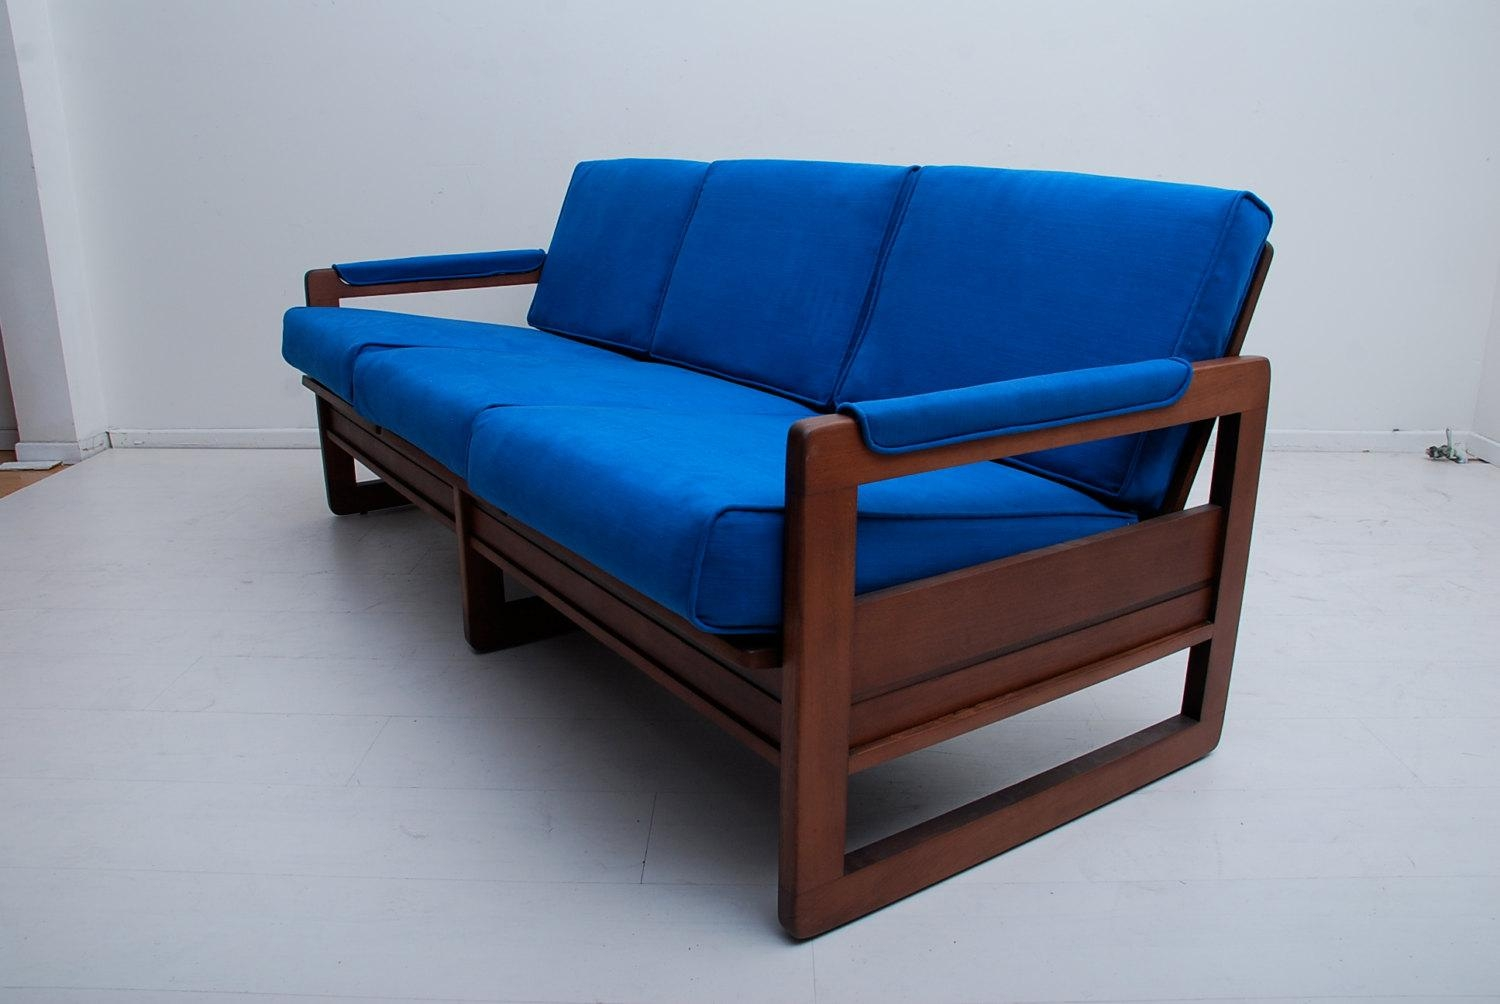 24 Simple Wooden Sofa To Use In Your Home | Keribrownhomes in Blue Sofa Chairs